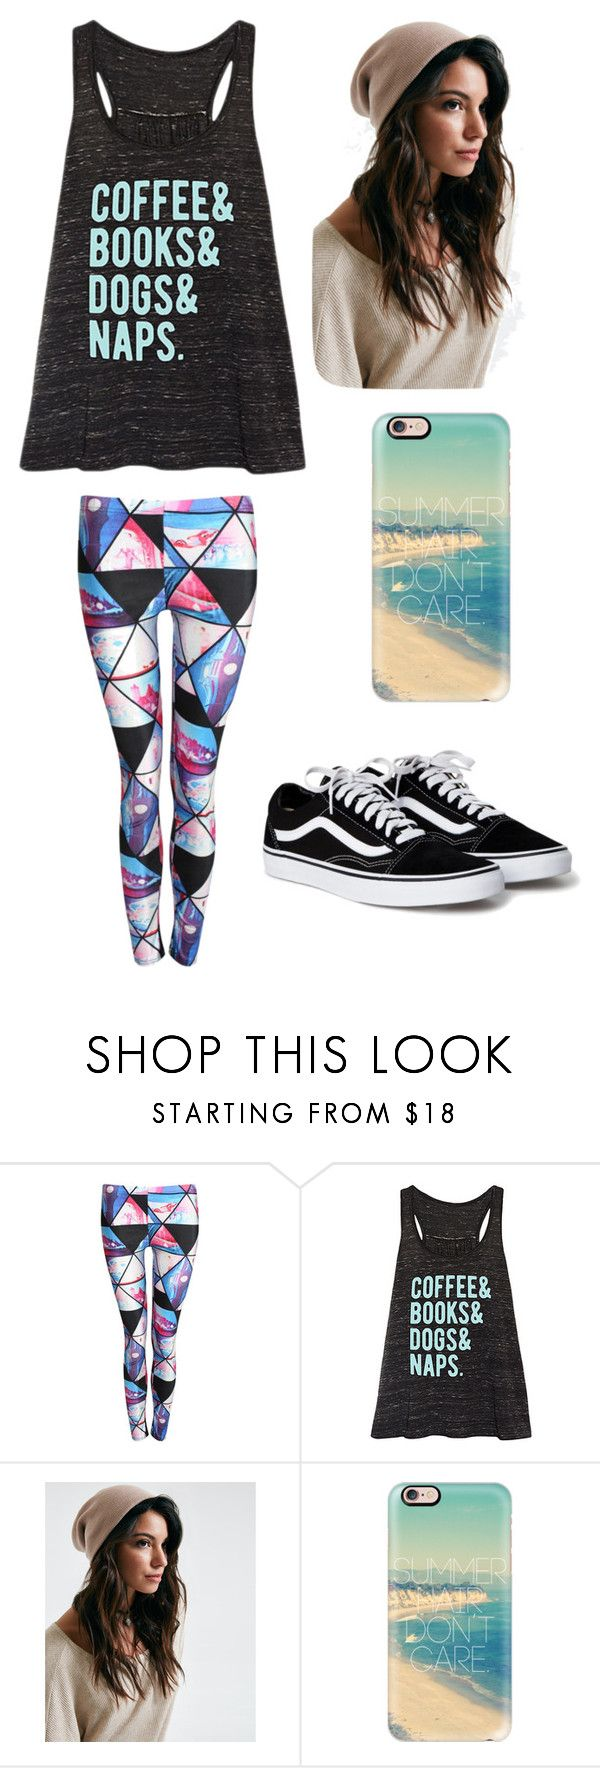 """Untitled #46"" by moriartylauren on Polyvore featuring Pilot, LC Trendz and Casetify"